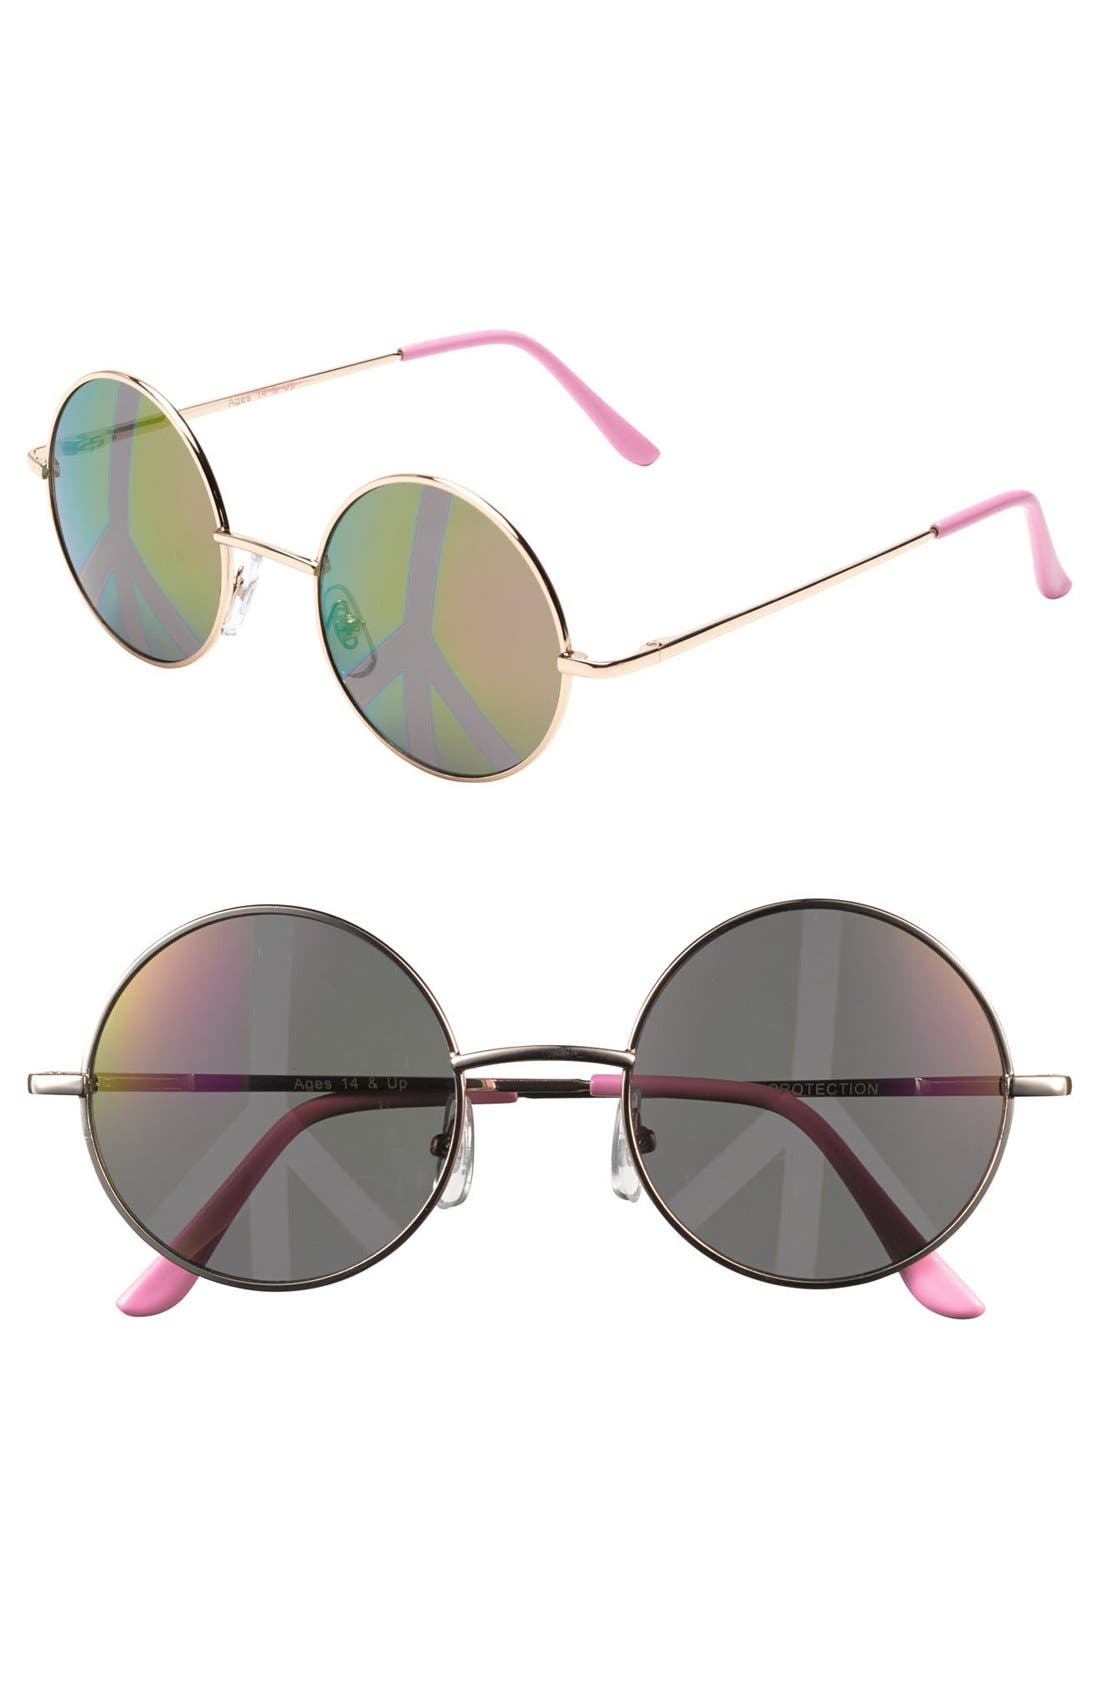 Main Image - FE NY 'Love Bug' Sunglasses